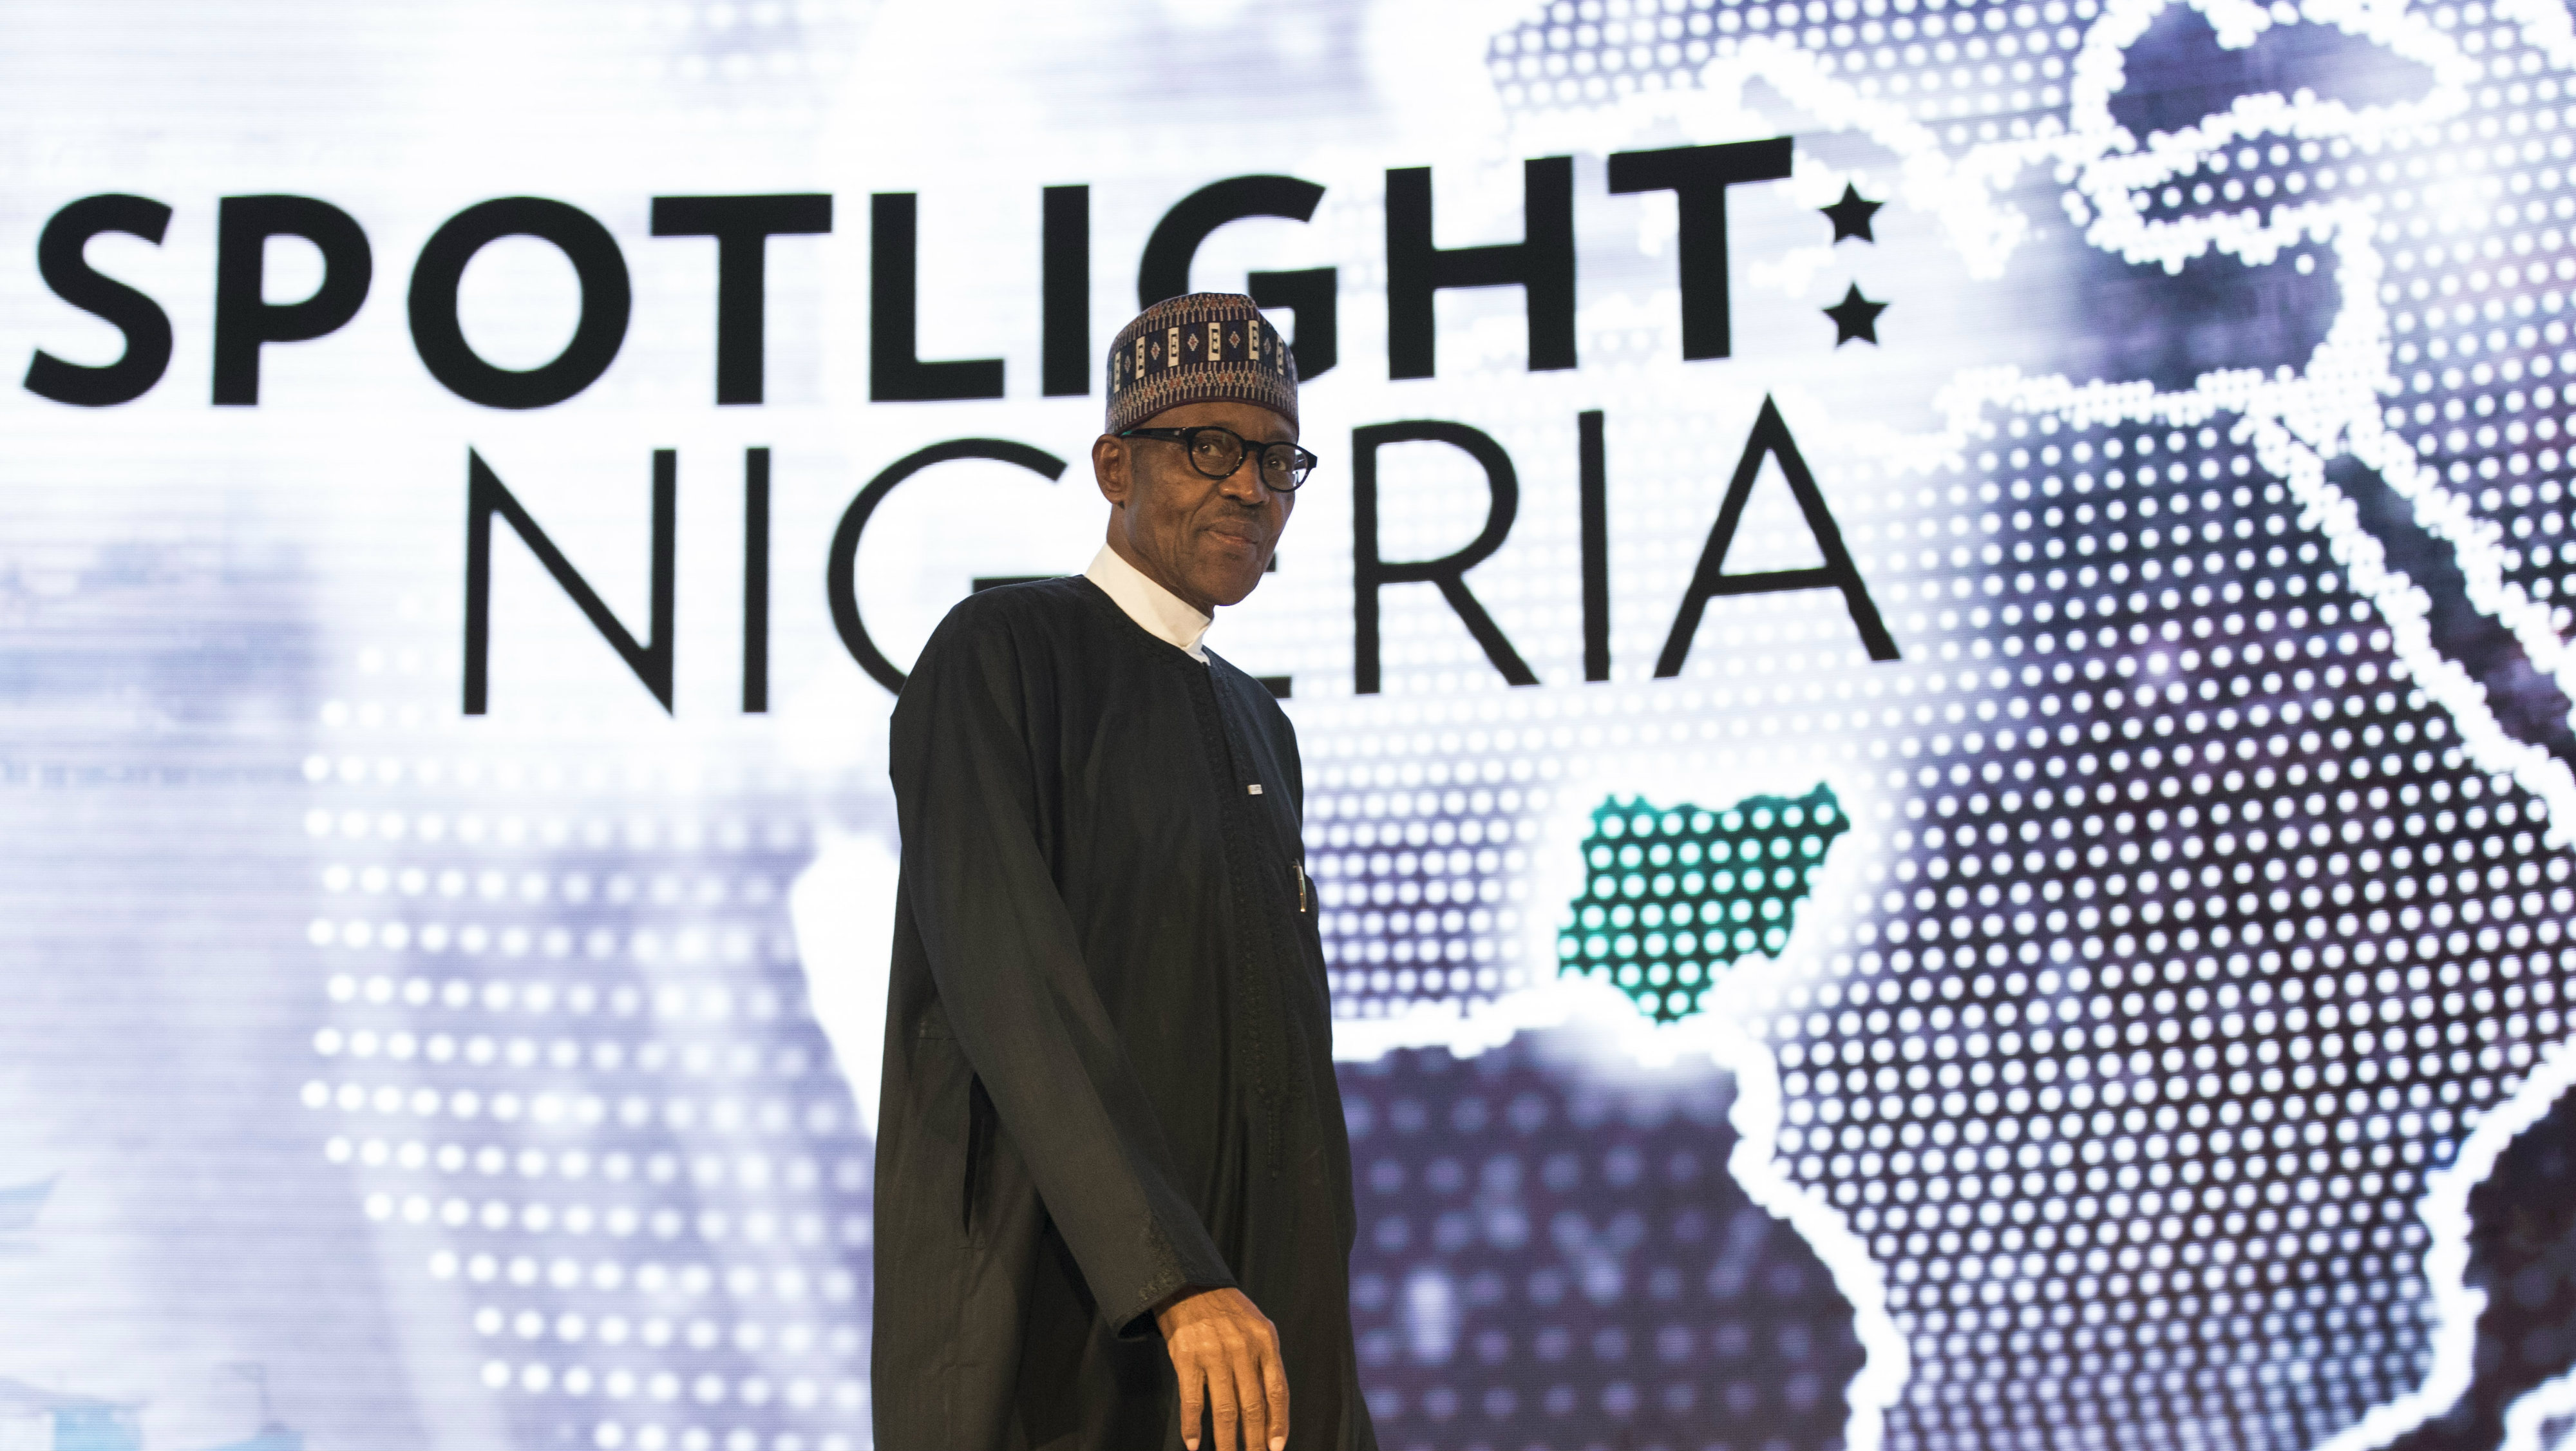 President of Nigeria Muhammadu Buhari arrives to speak at the U.S.-Africa Business Forum at the Plaza Hotel, September 21, 2016 in New York City. The forum is focused on trade and investment opportunities on the African continent for African heads of government and American business leaders.